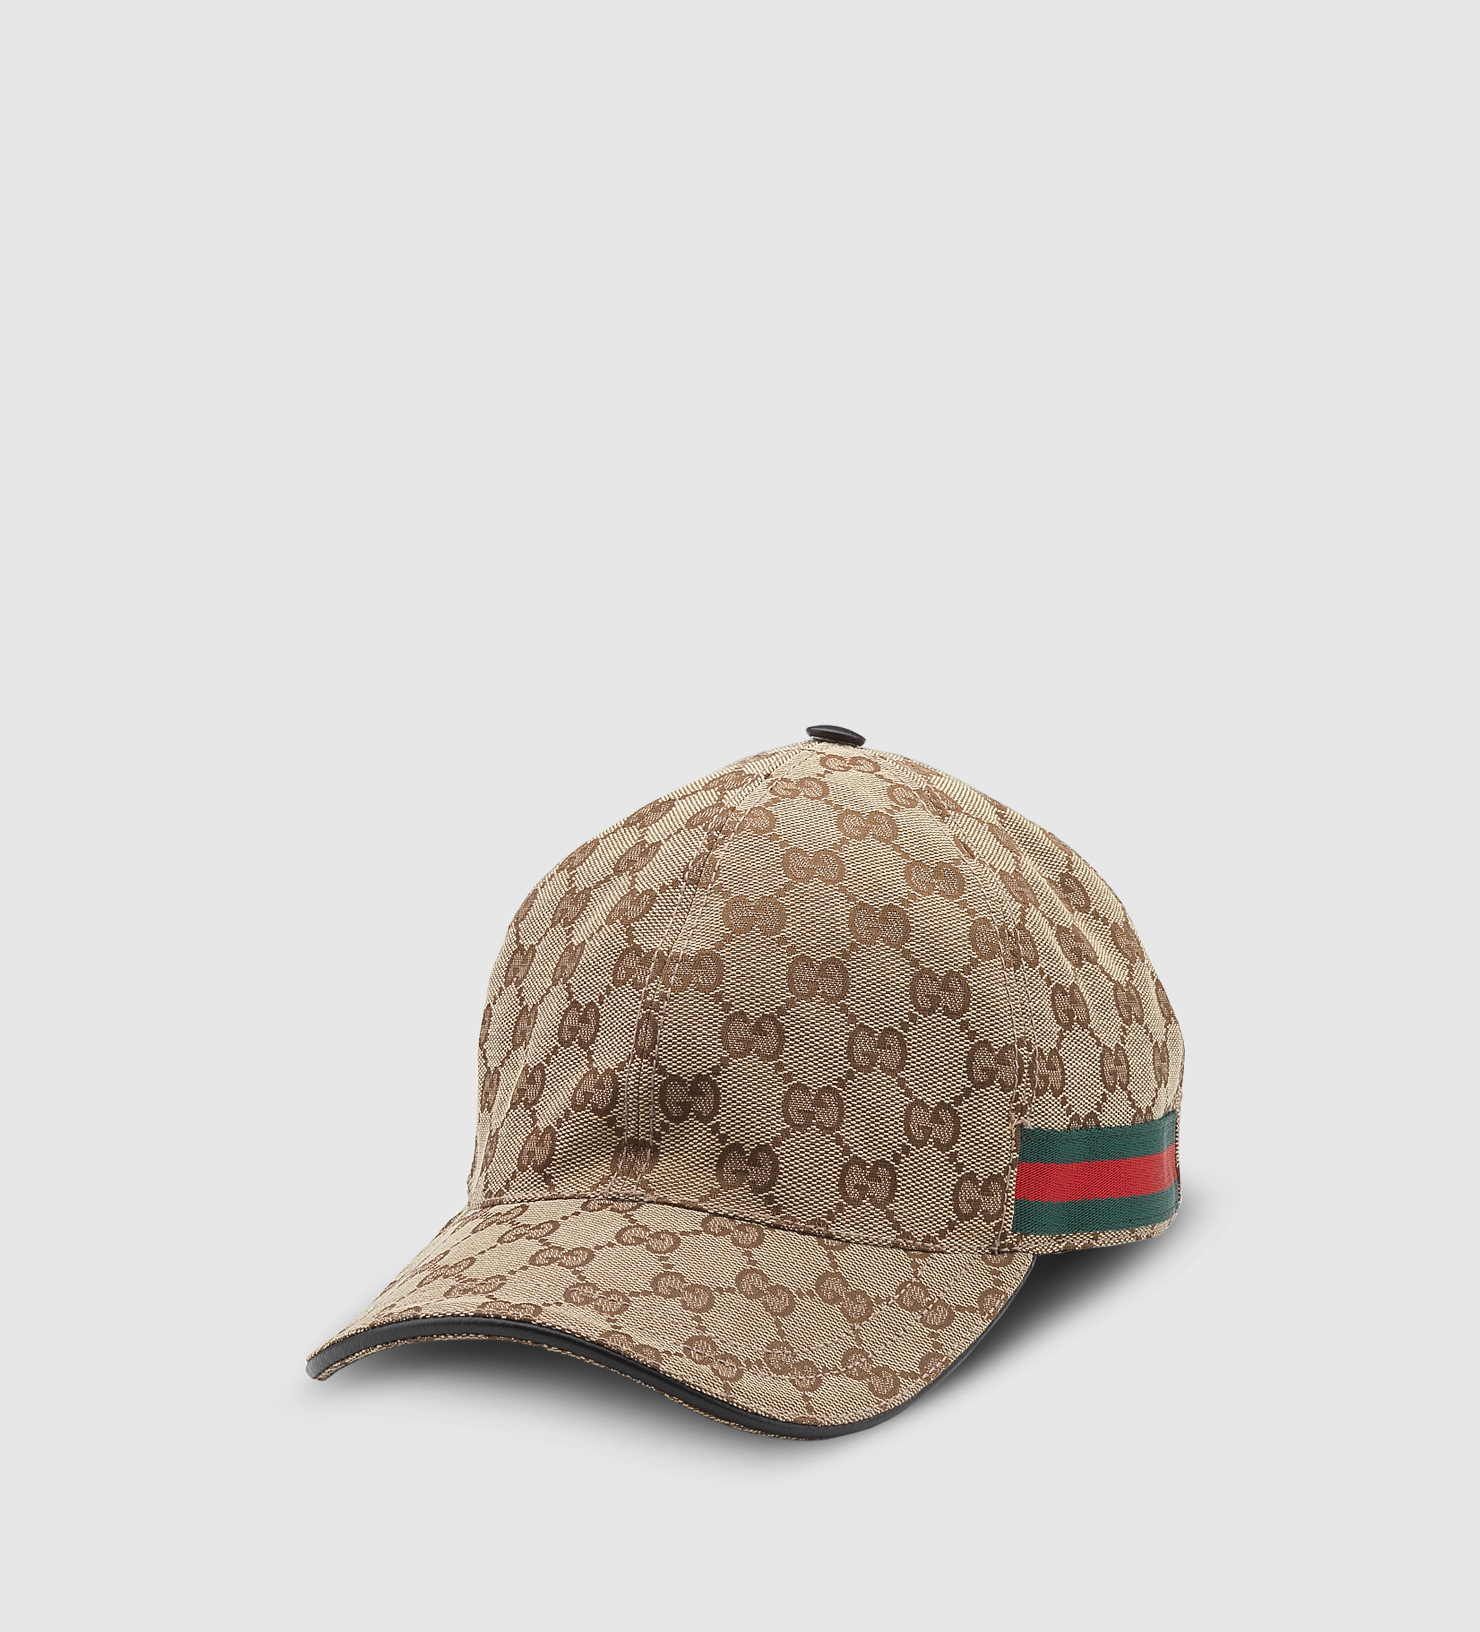 7f1eff19e98 Gucci Original Gg Canvas Baseball Hat With Web in Natural for Men - Lyst